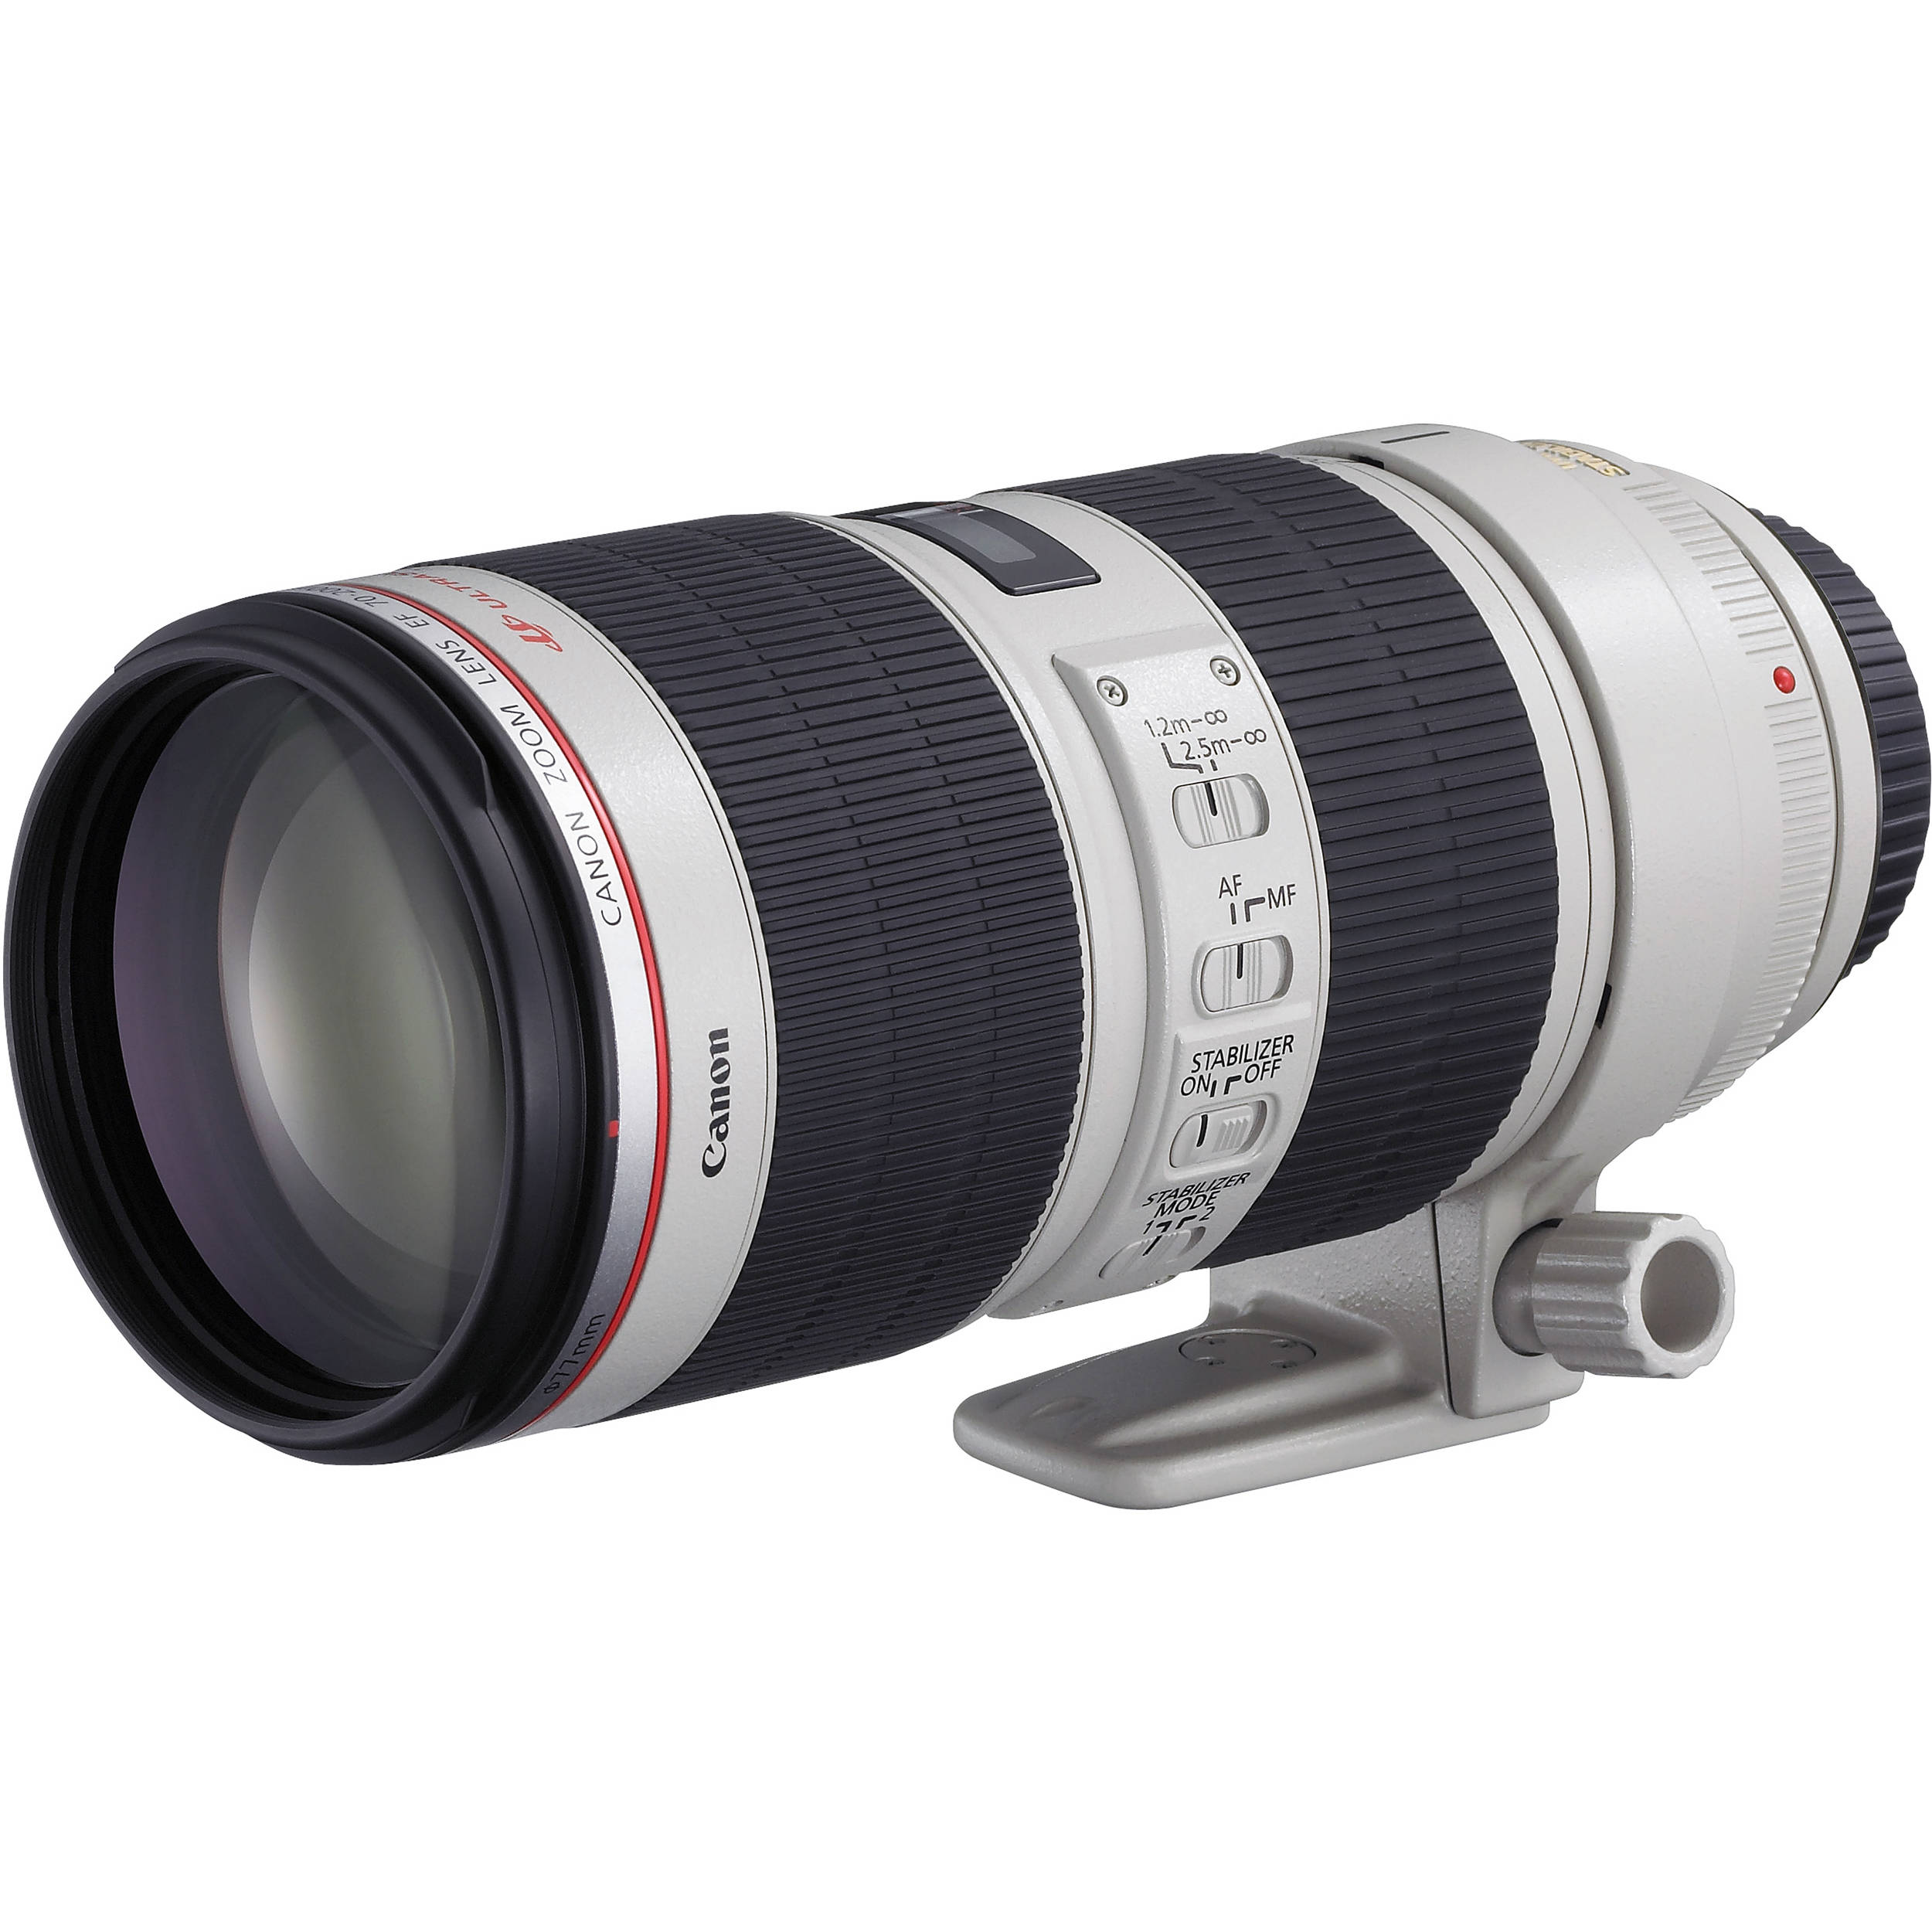 Canon 70-200mm f2.8 L IS